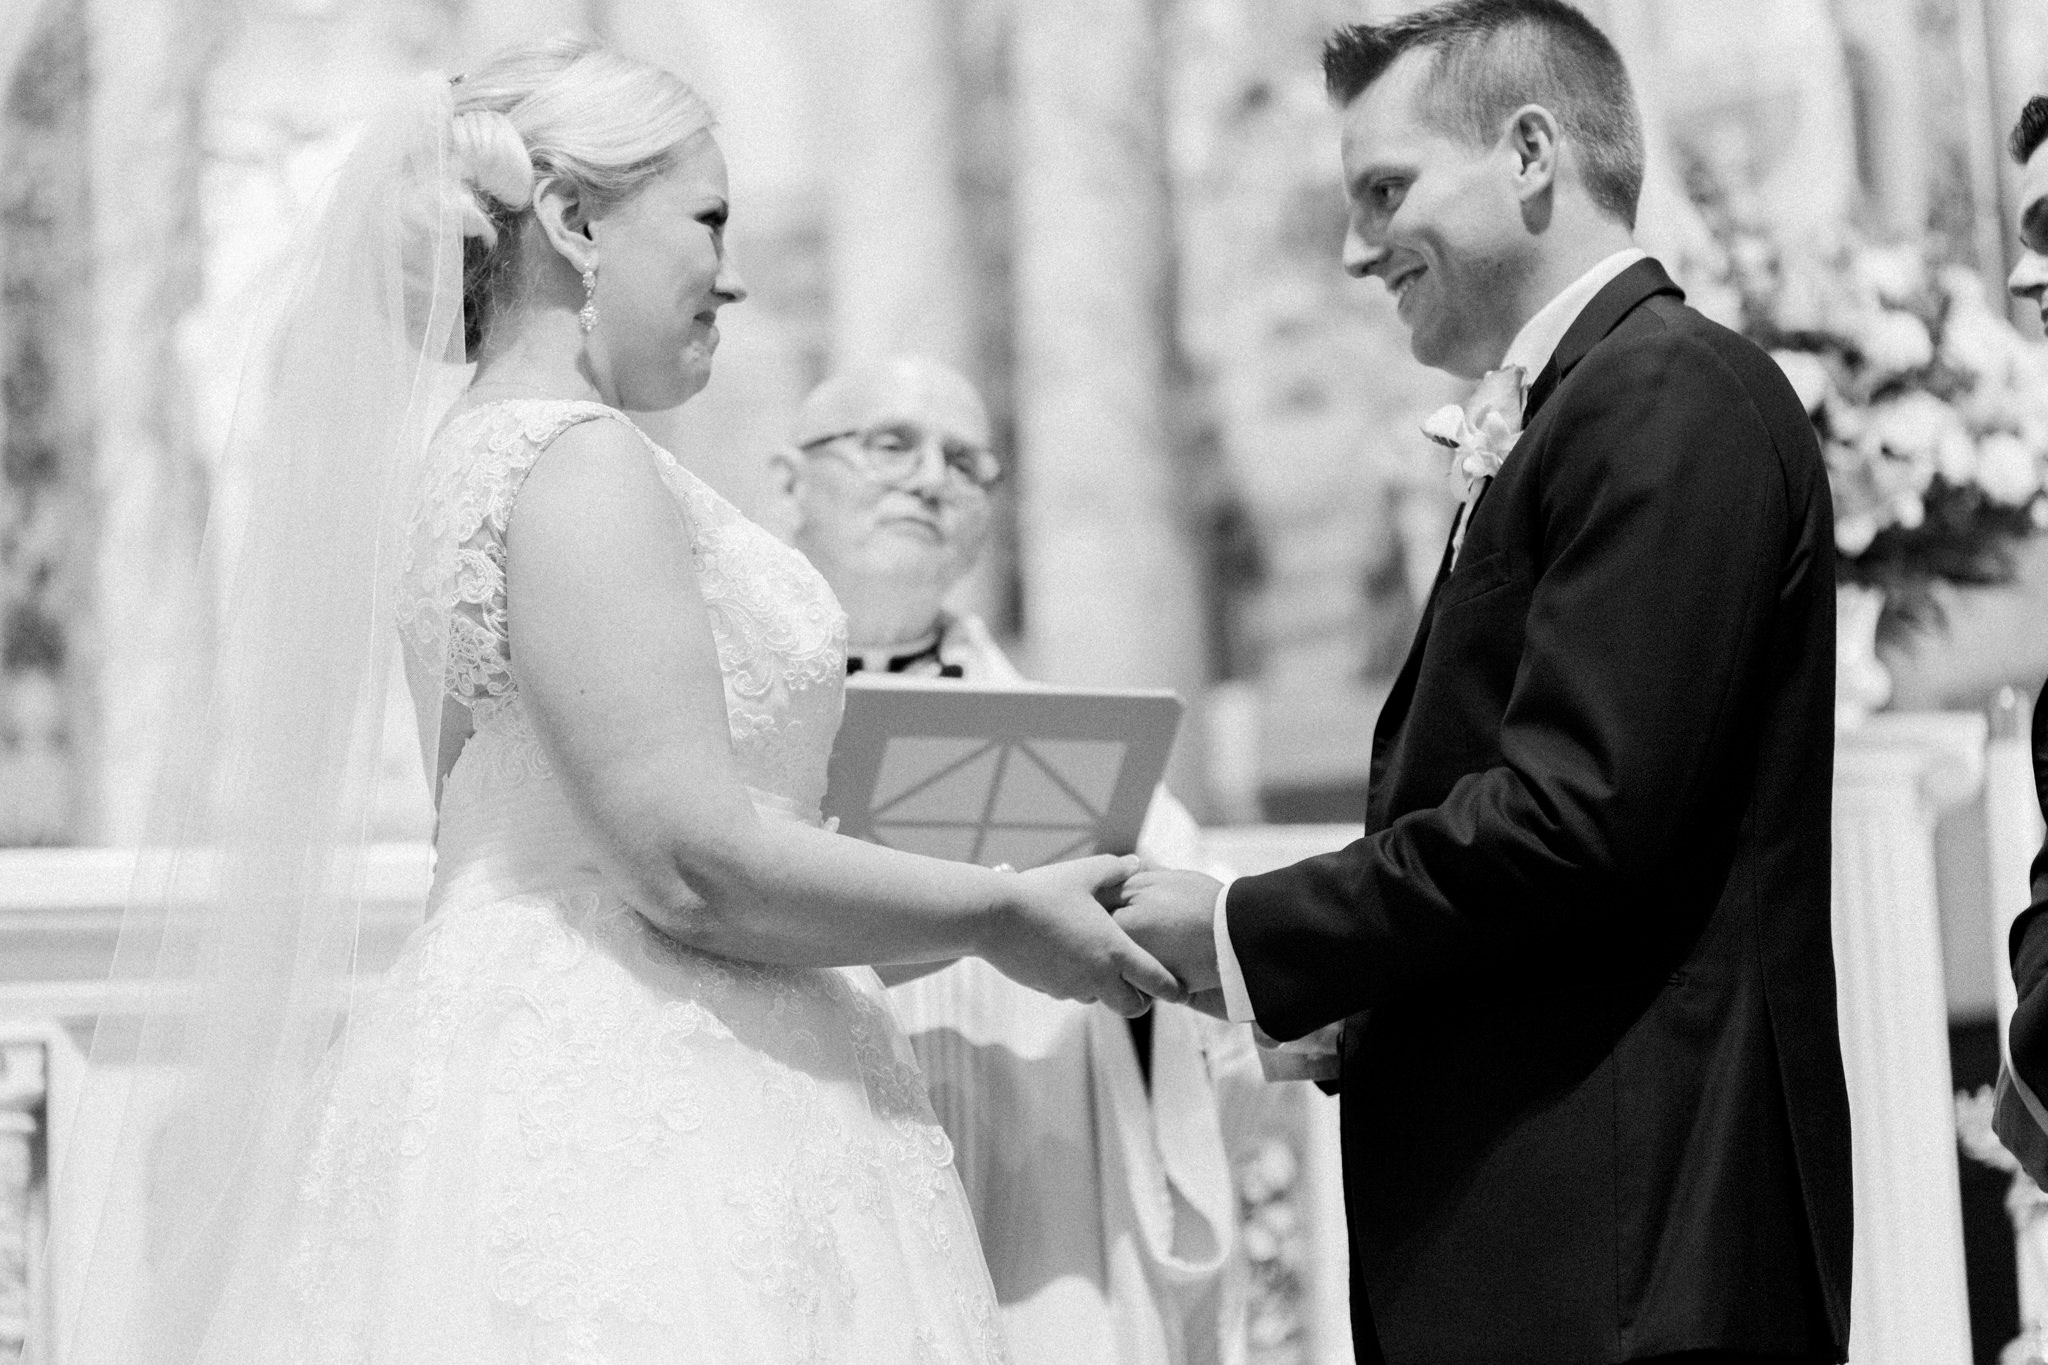 Up close shot of Bride and groom saying their vows at St. Agnes Catholic Church in Louisville ky.